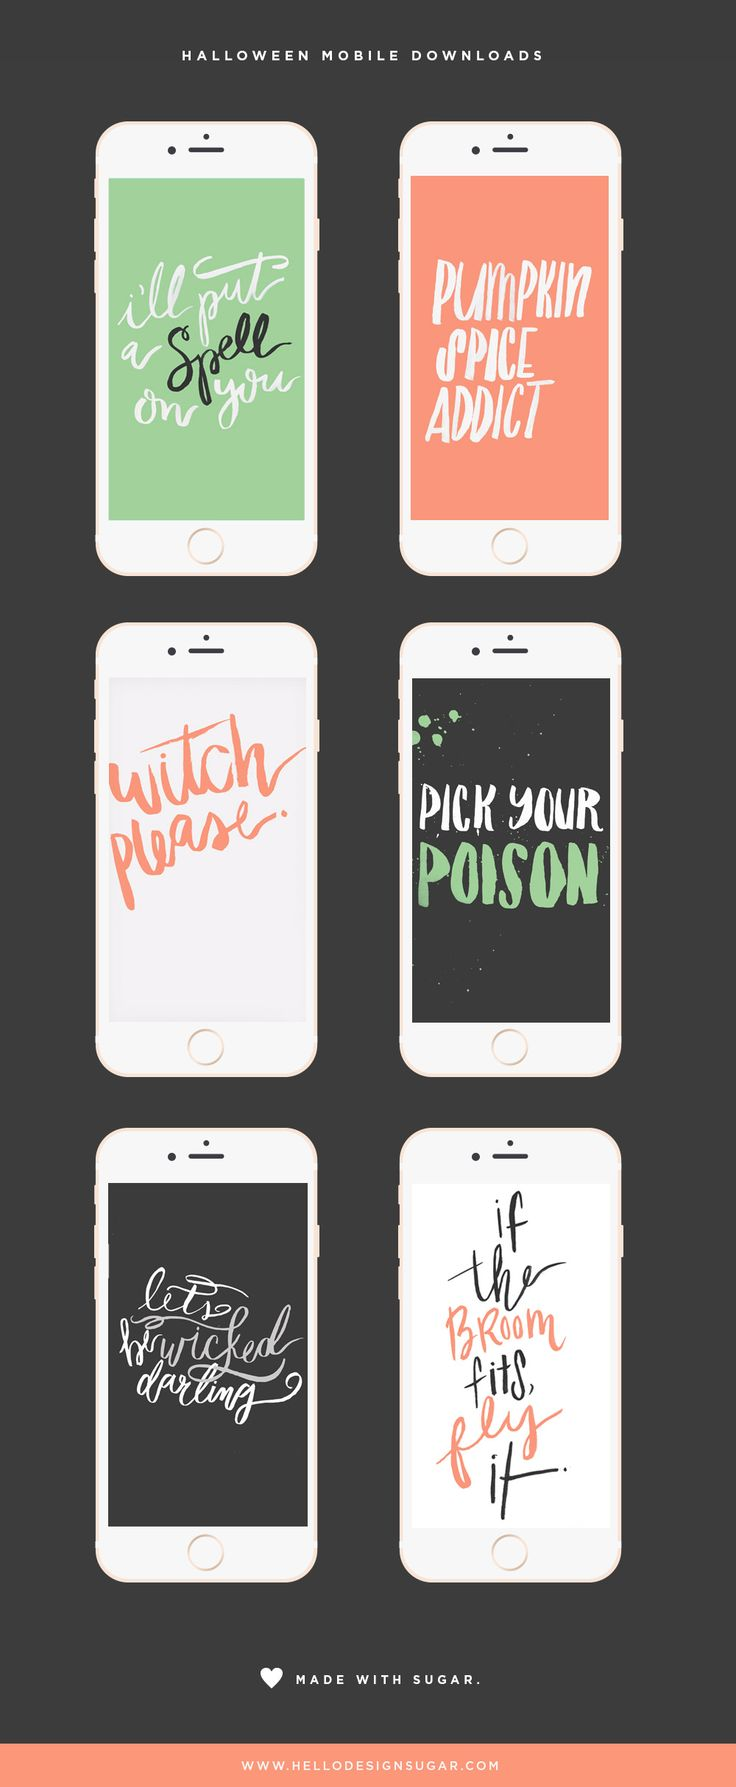 It's Friday Freebie time! Enjoy six quirky 'not just for Halloween' mobile wallpaper downloads!